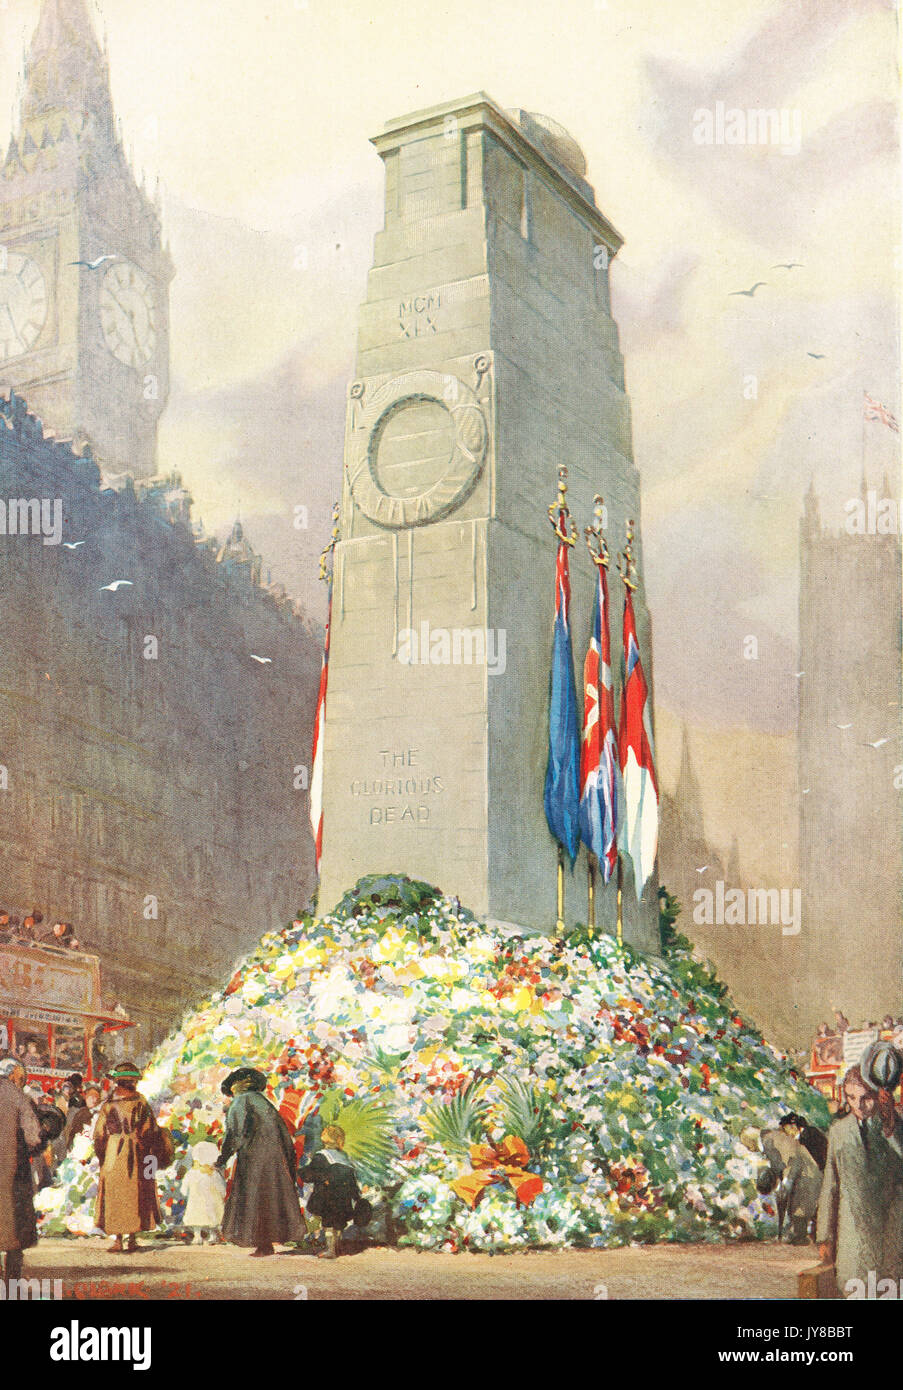 1921 illustration of Cenotaph in London - Stock Image